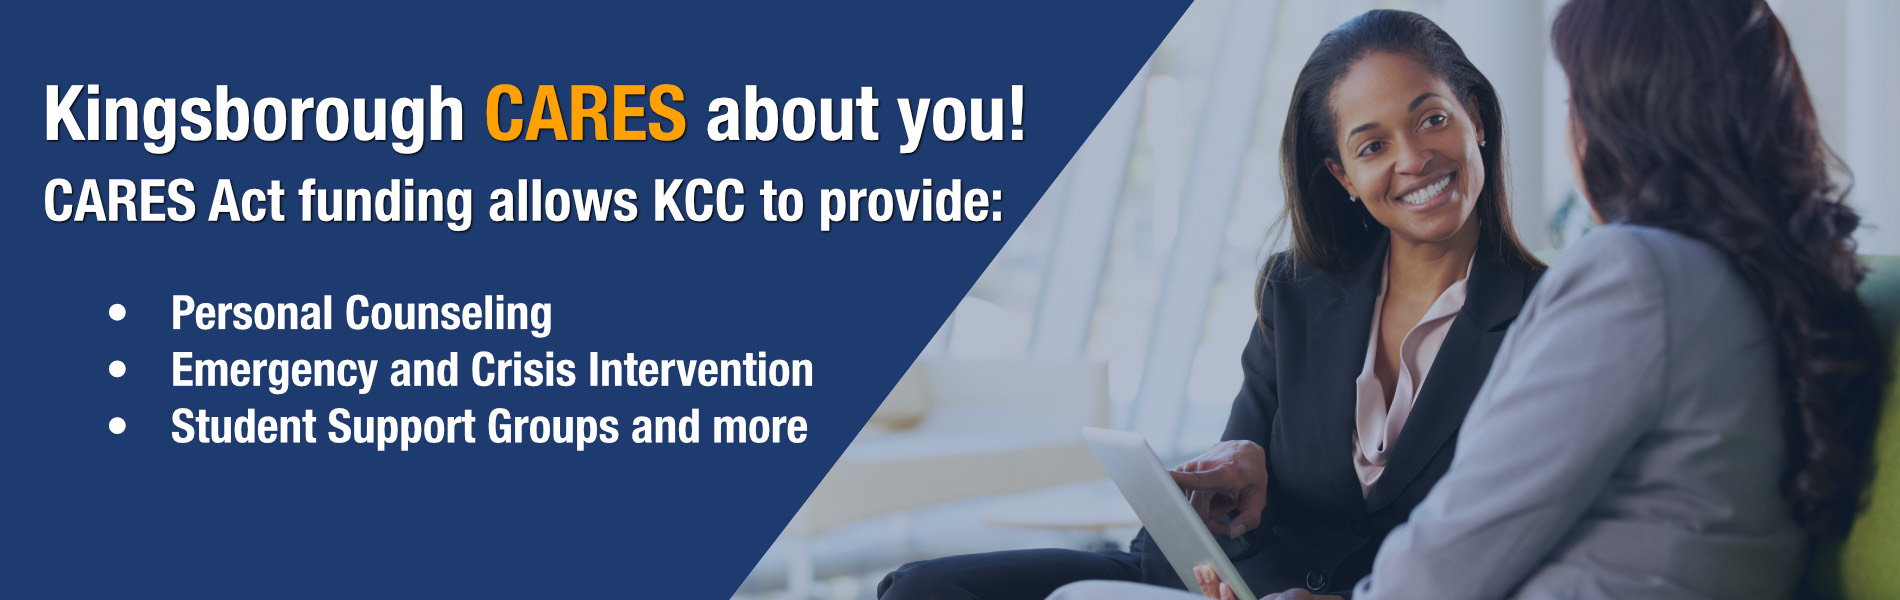 Kingsborough CARES about you!